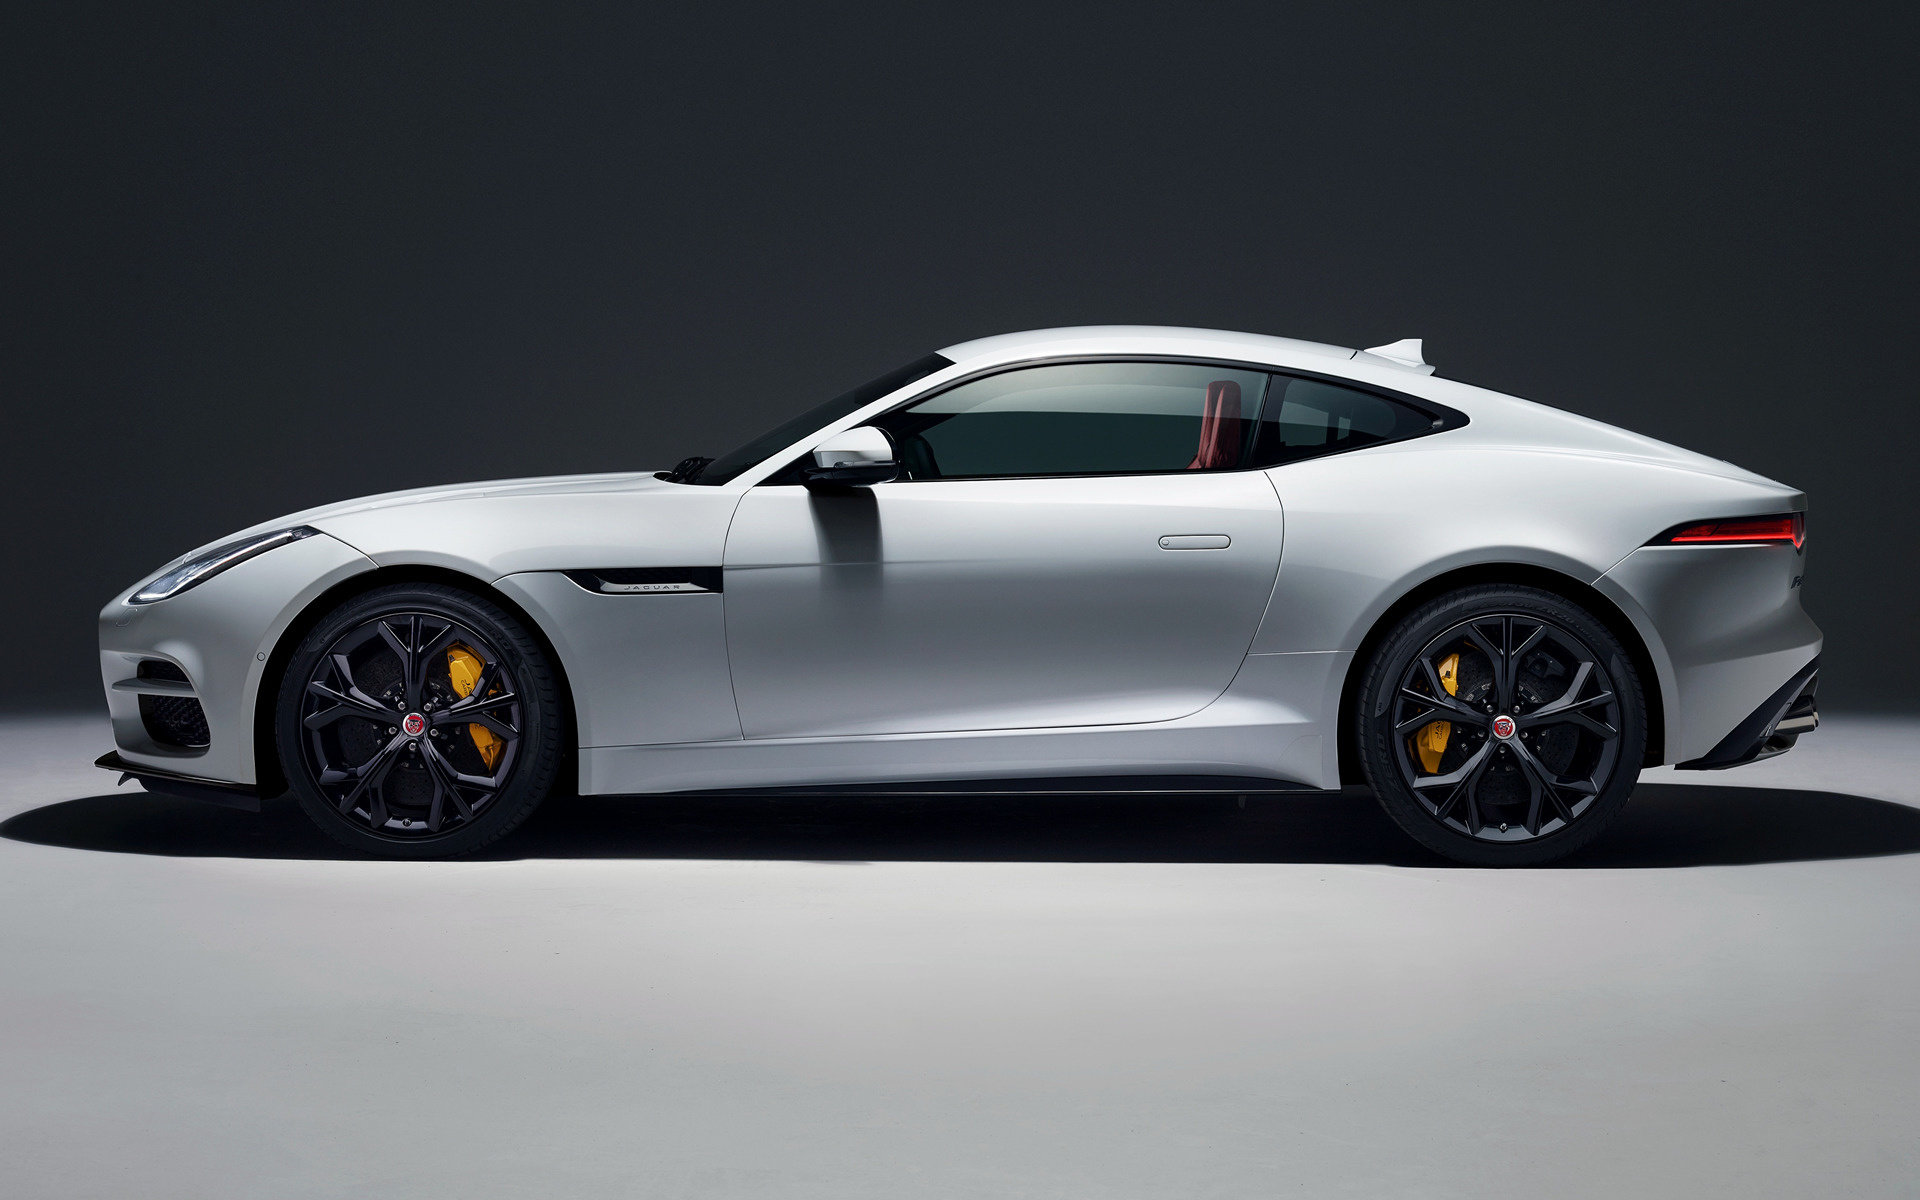 33 Jaguar F Type R Wallpapers On Wallpapersafari